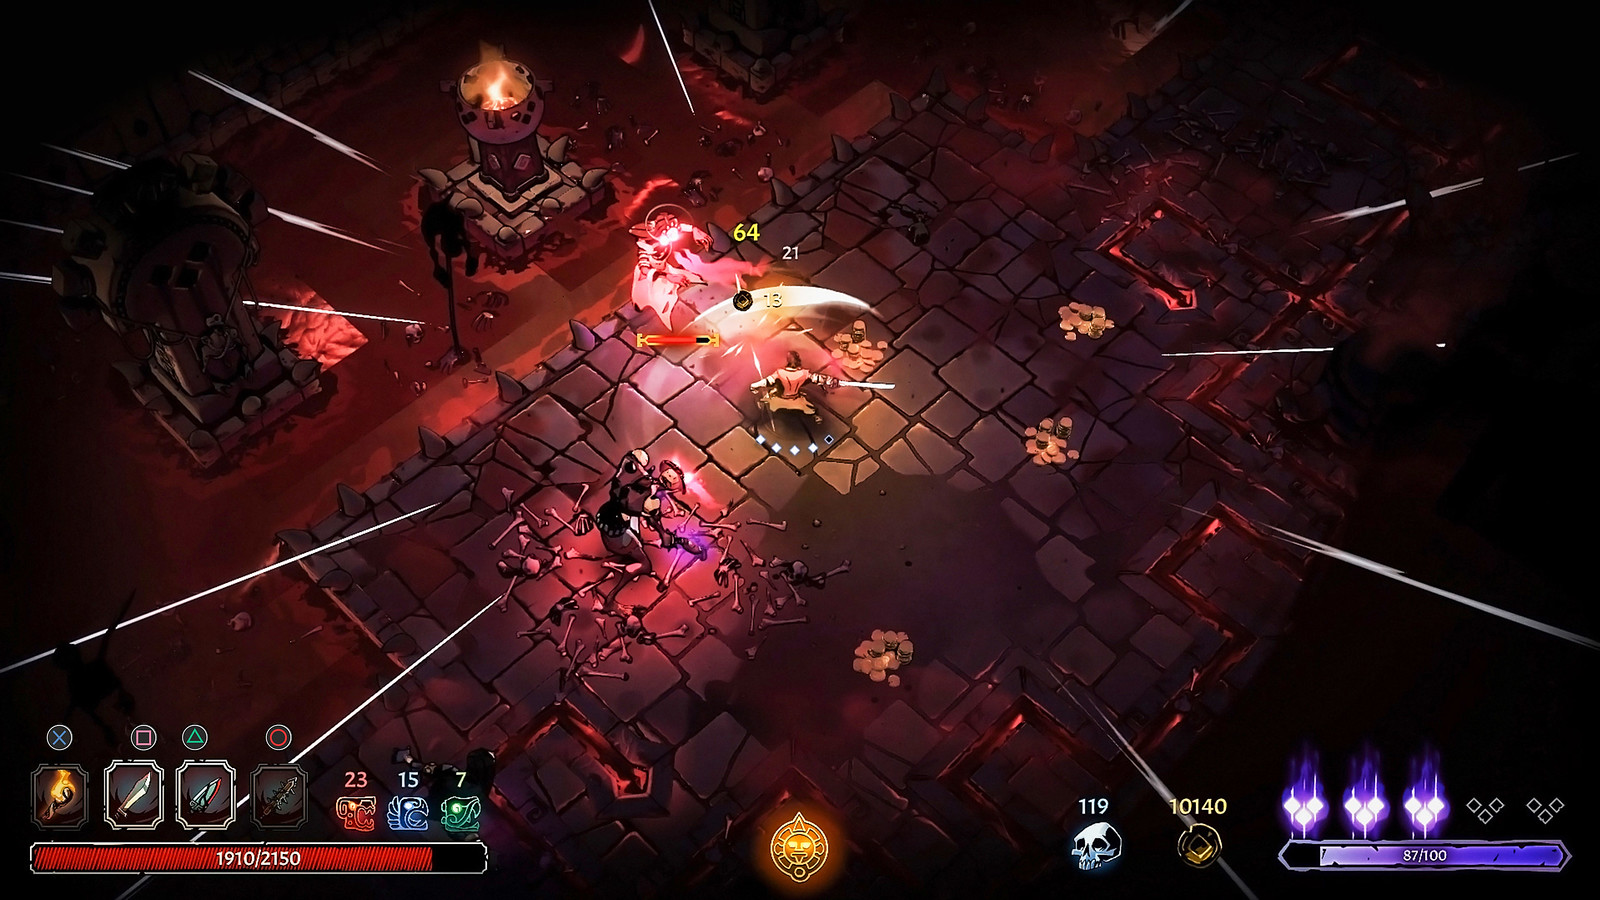 curse-of-the-dead-gods-7-gameplay-tips-for-the-monster-slaying-roguelike-out-tomorrow-playstation-blog